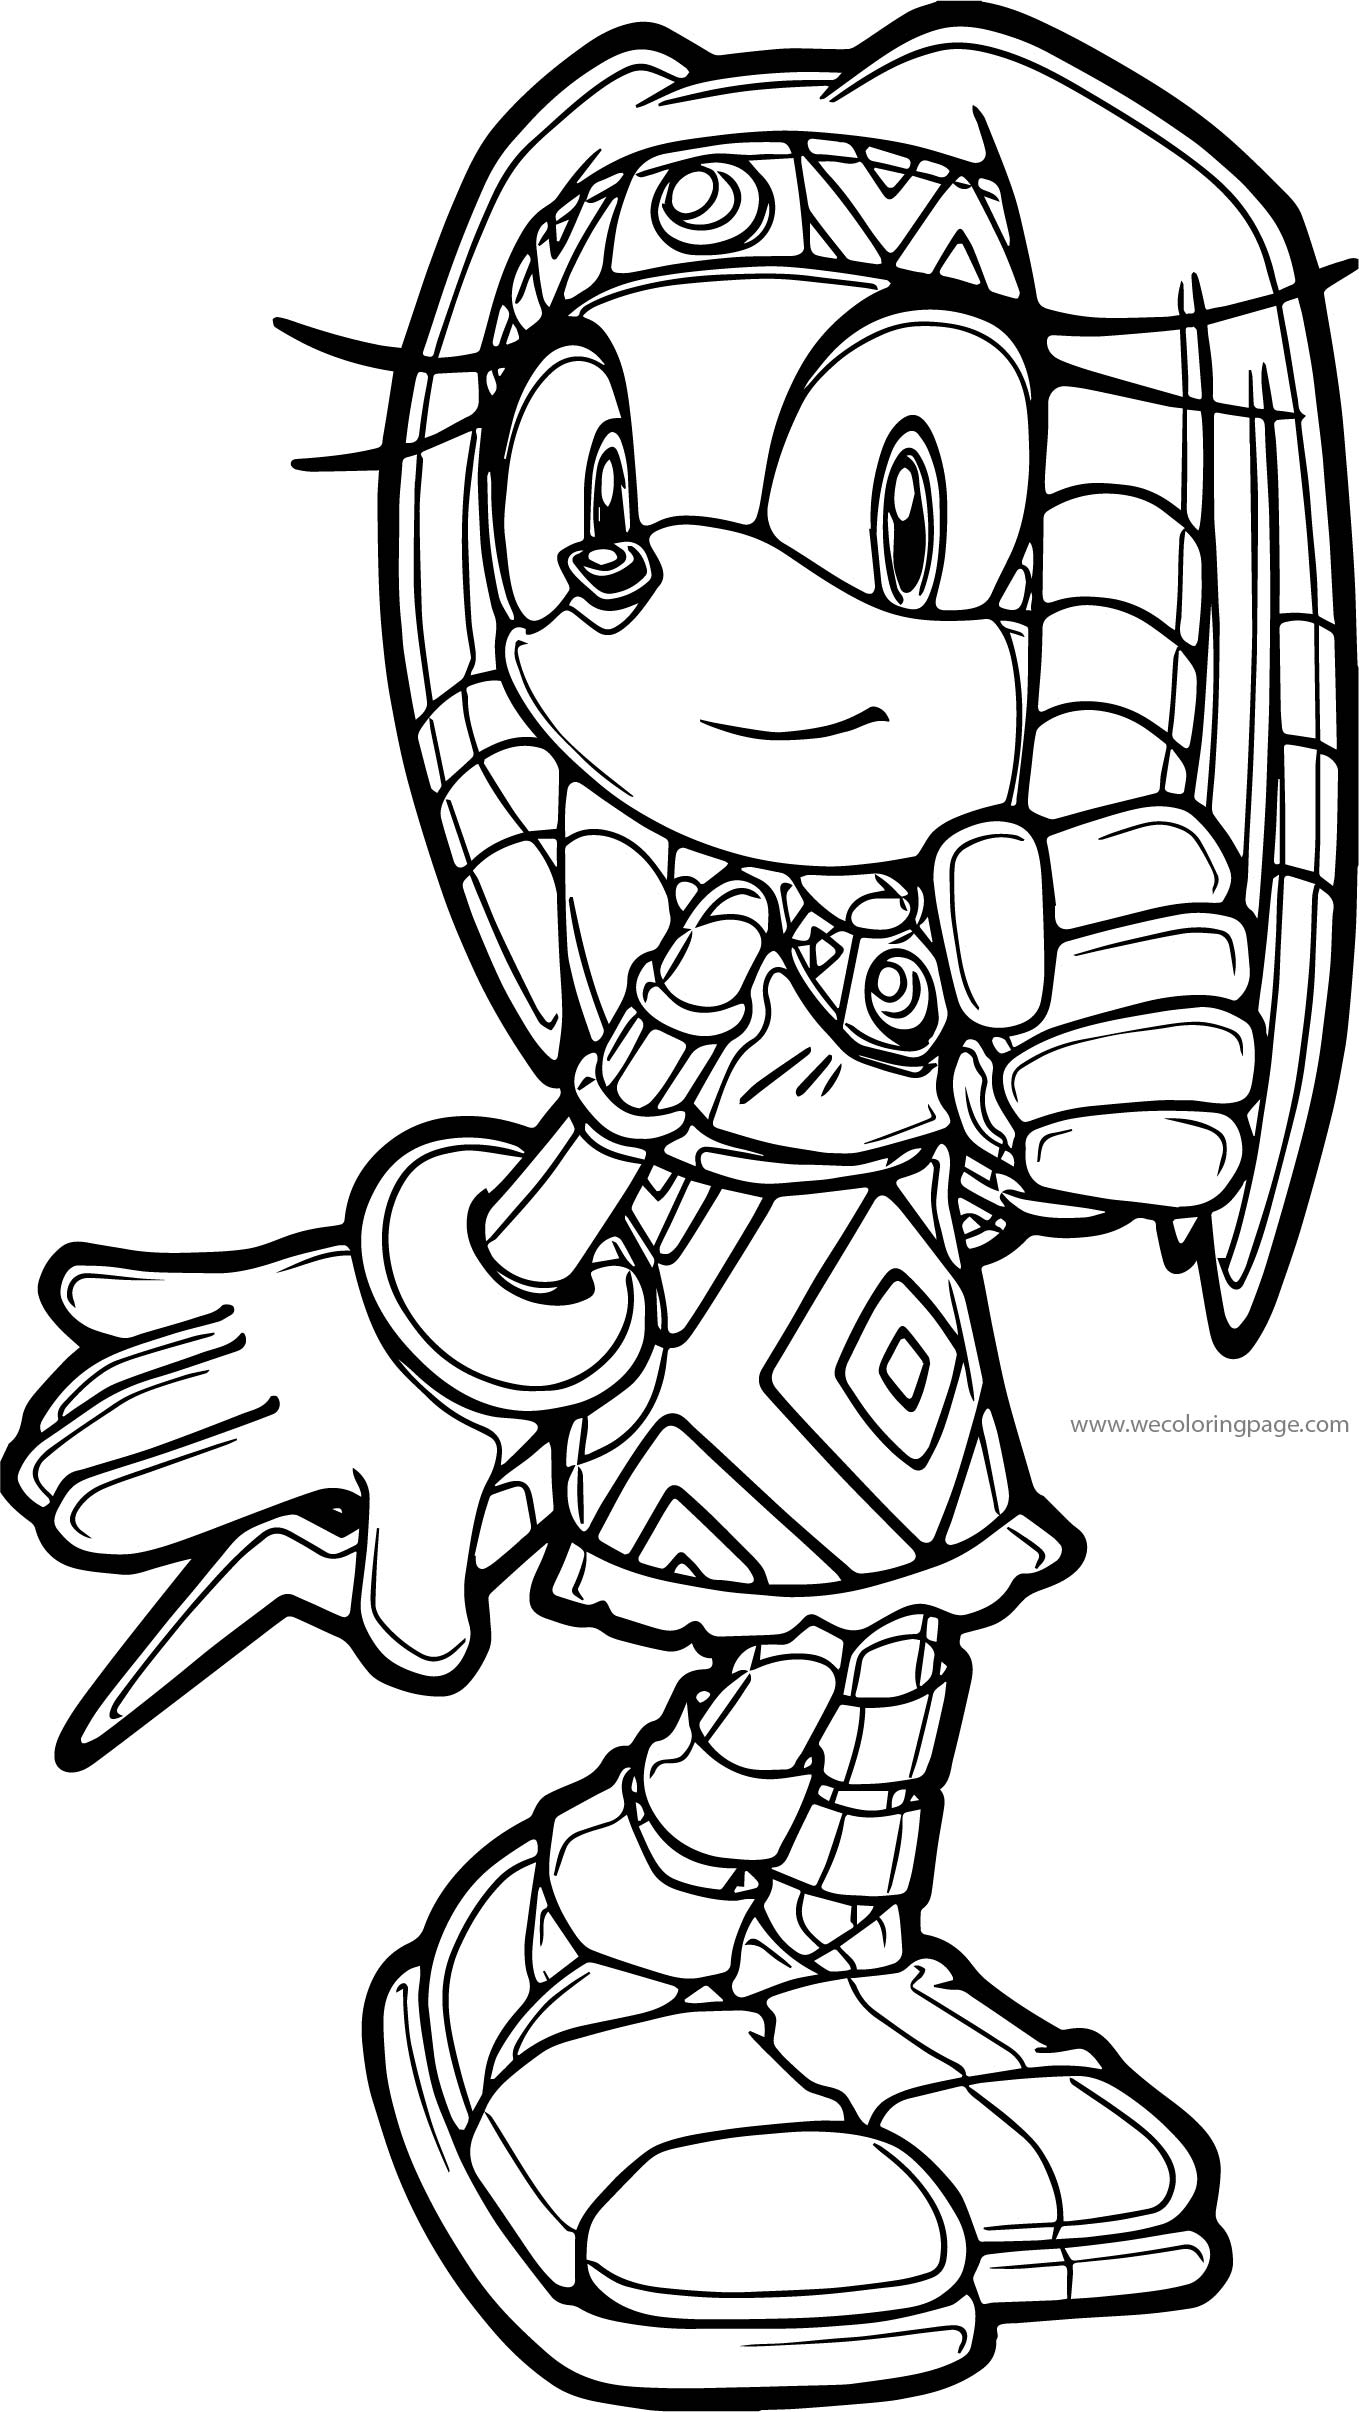 Egyptian Sonic The Hedgehog Coloring Page